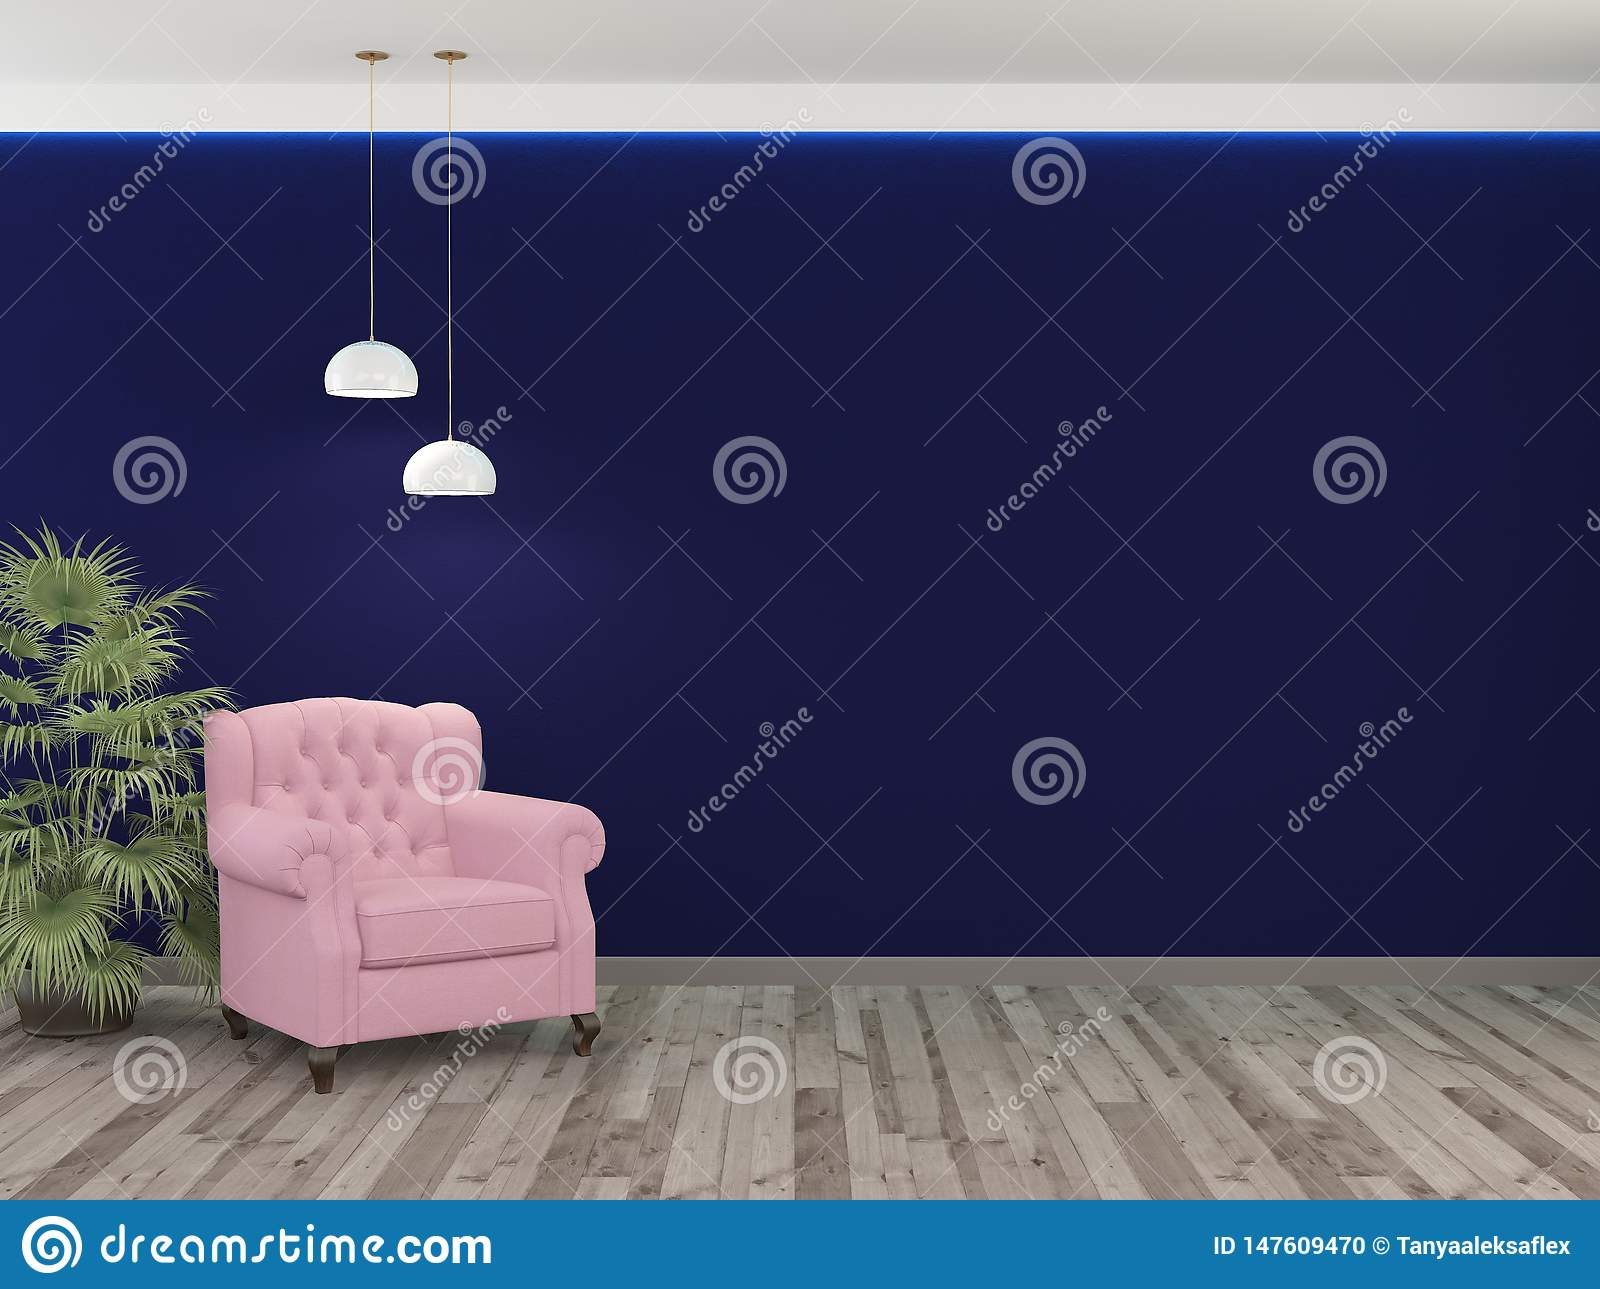 Pink chair, palm plant and blue wall with two lamps. 3D rendering.